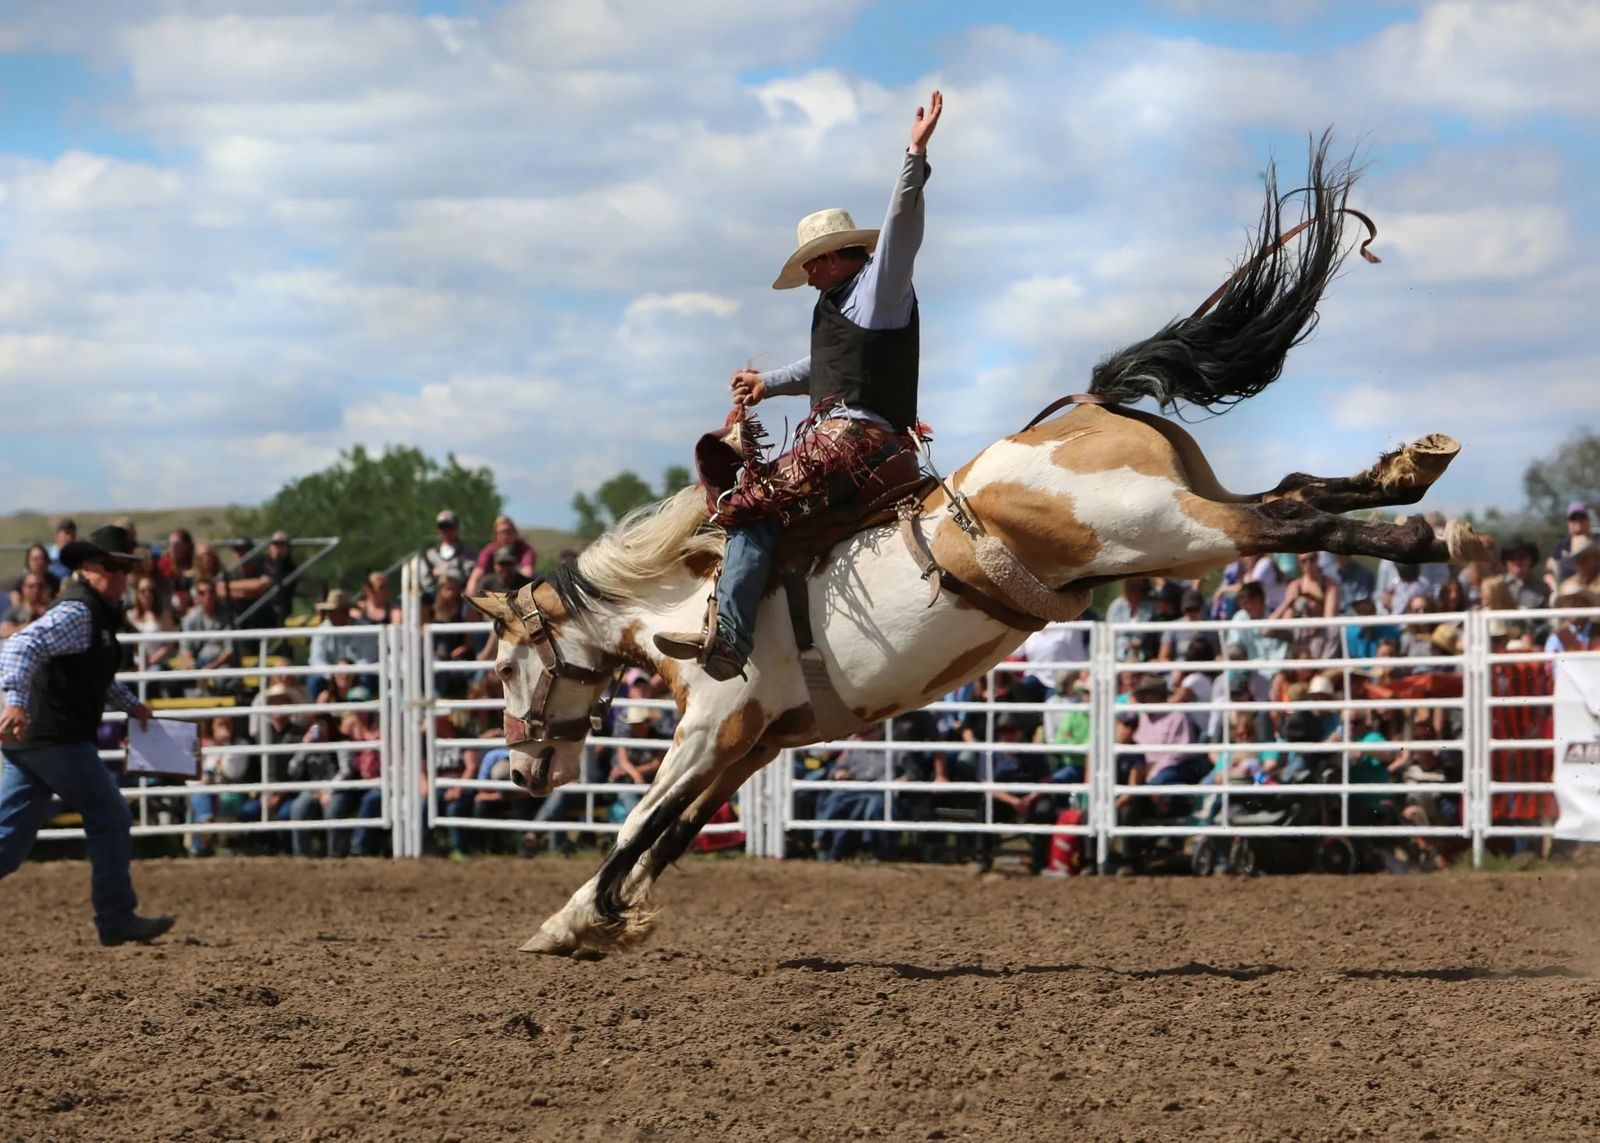 The World Famous Bucking Horse Sale